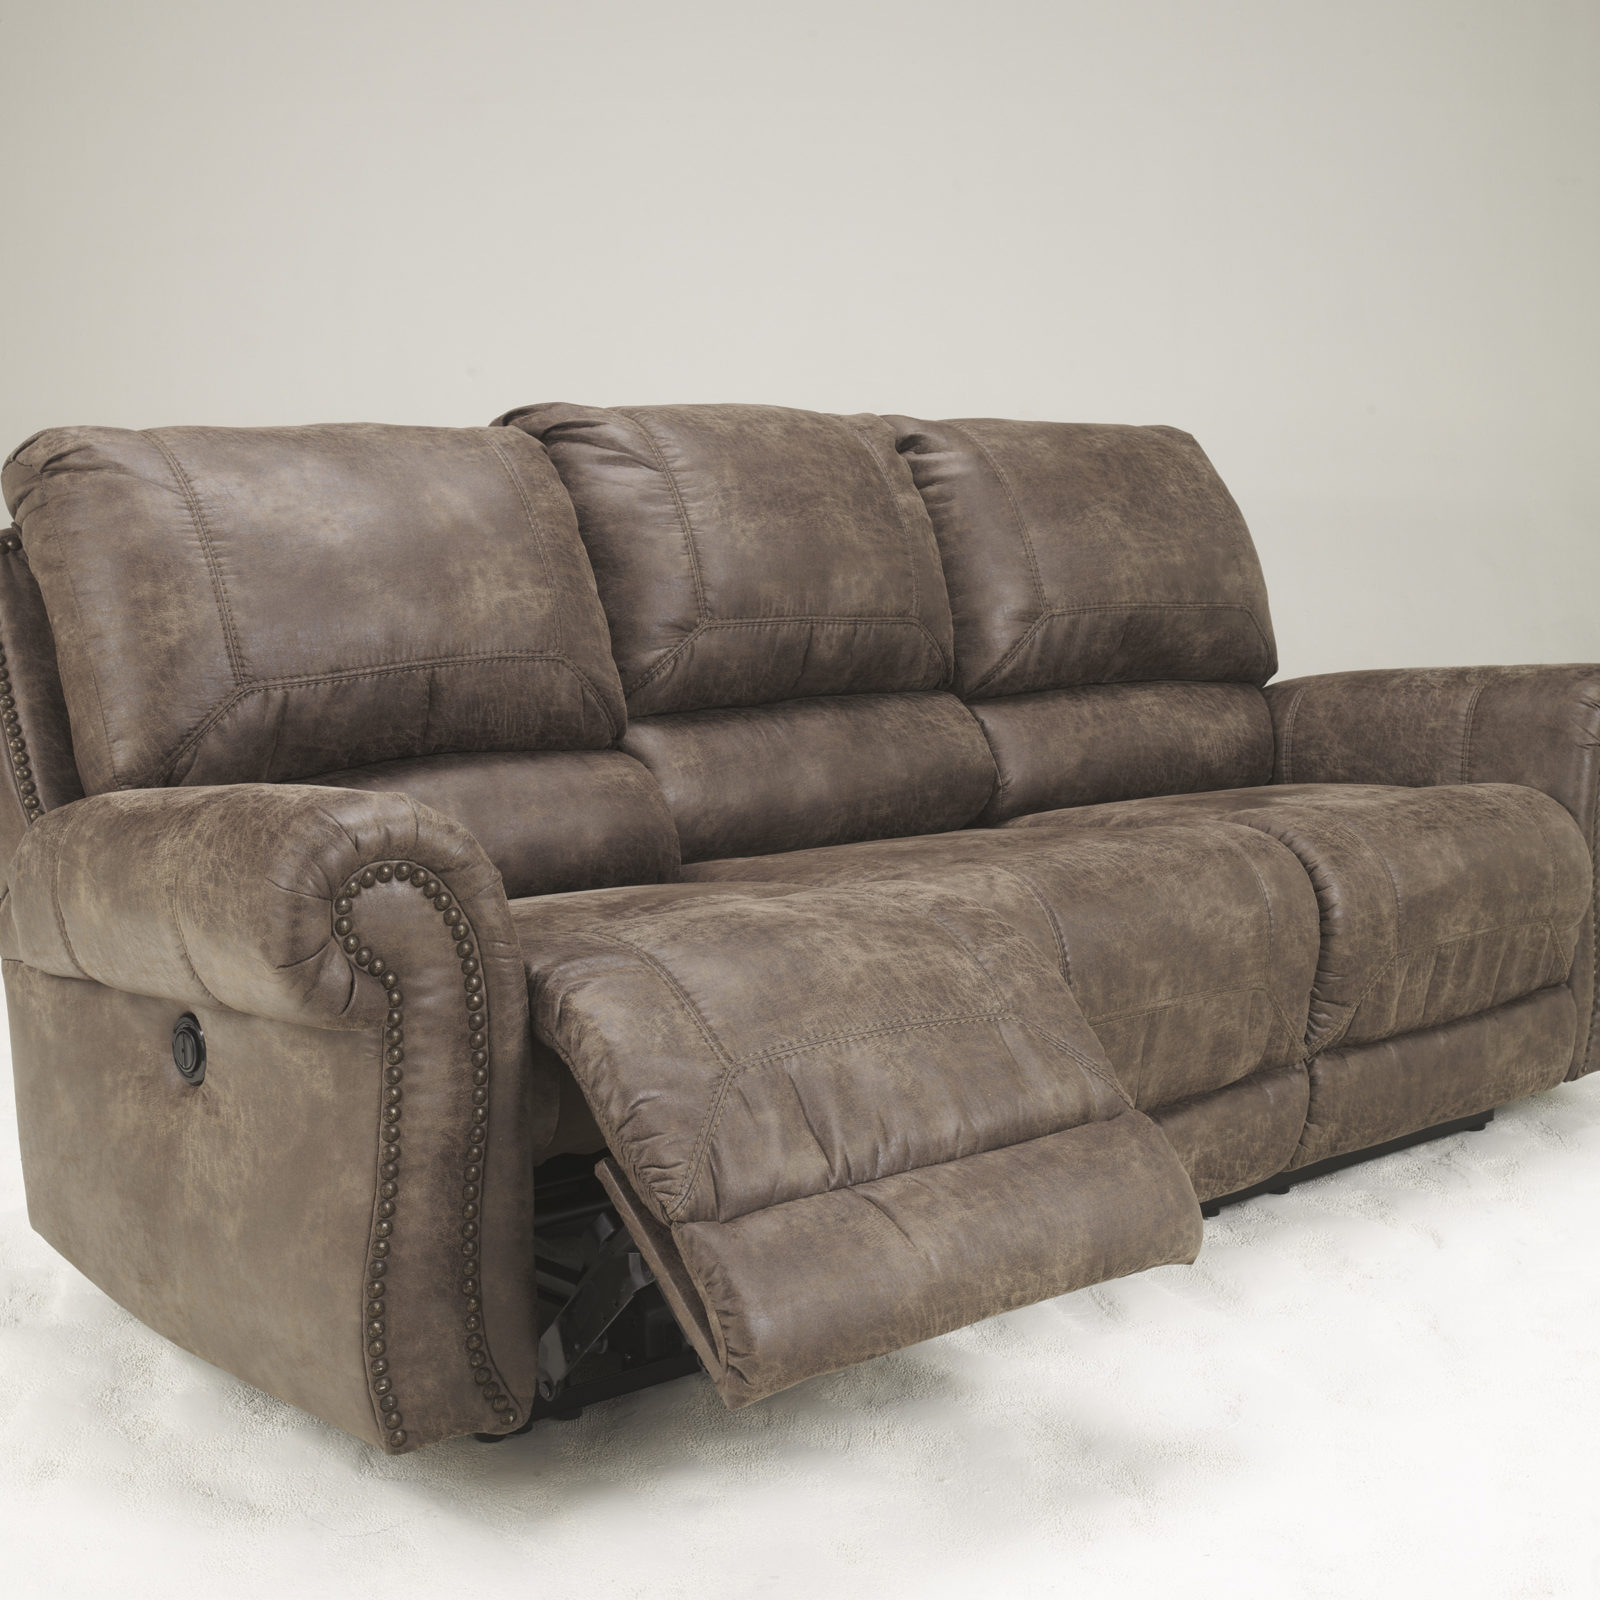 Signature Design Oberson Reclining Sofa Harrington Home Furniture